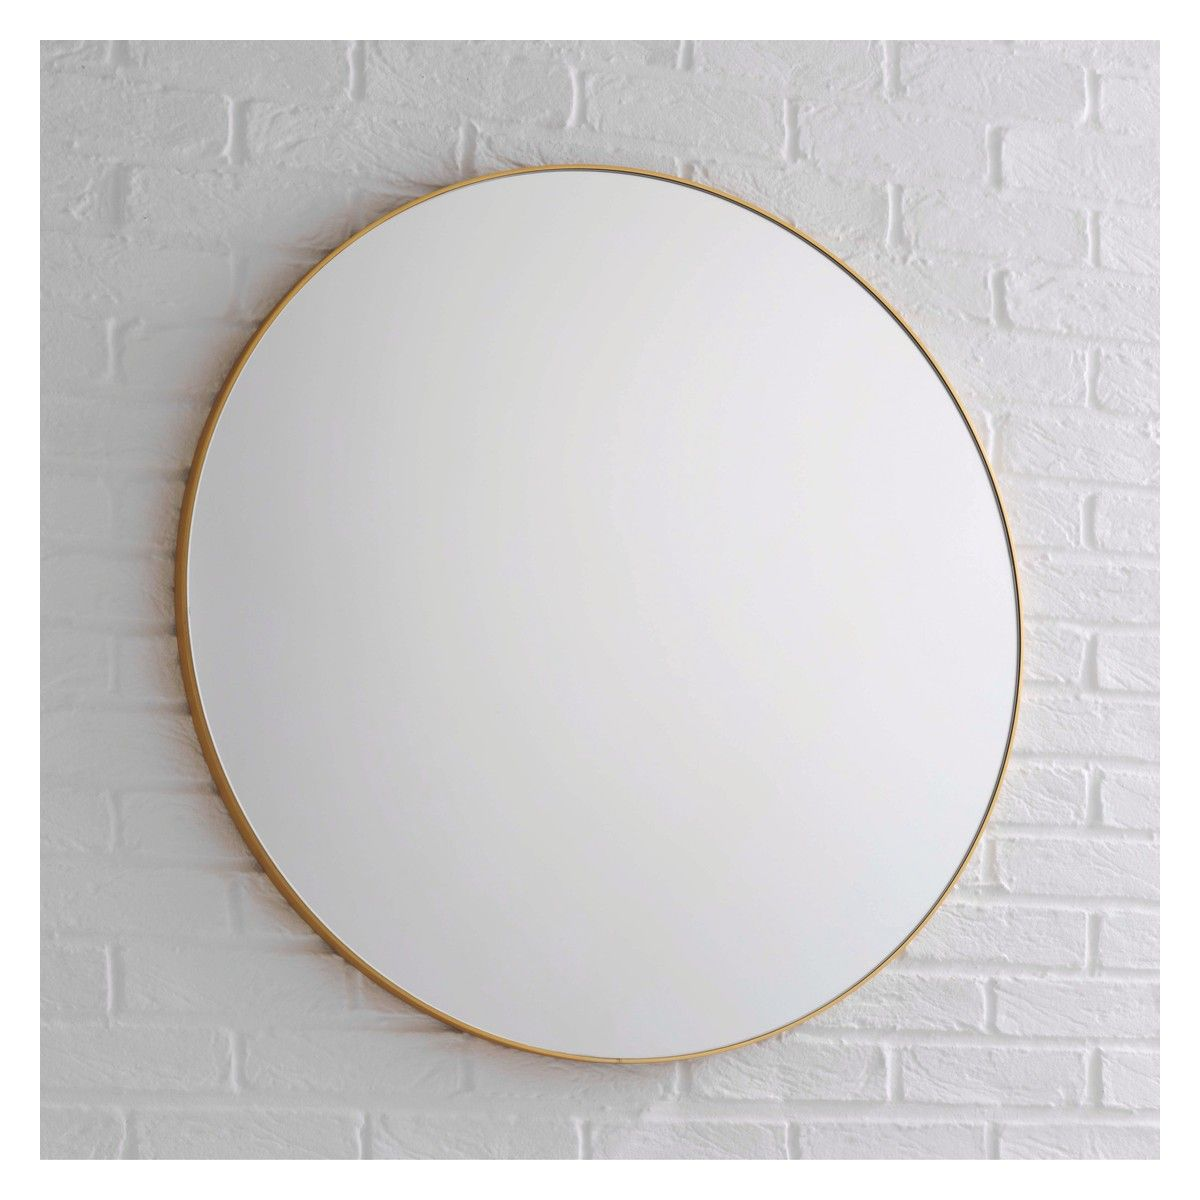 Patsy large round gold wall mirror d82cm gold wall mirror gold patsy large round gold wall mirror d82cm amipublicfo Image collections